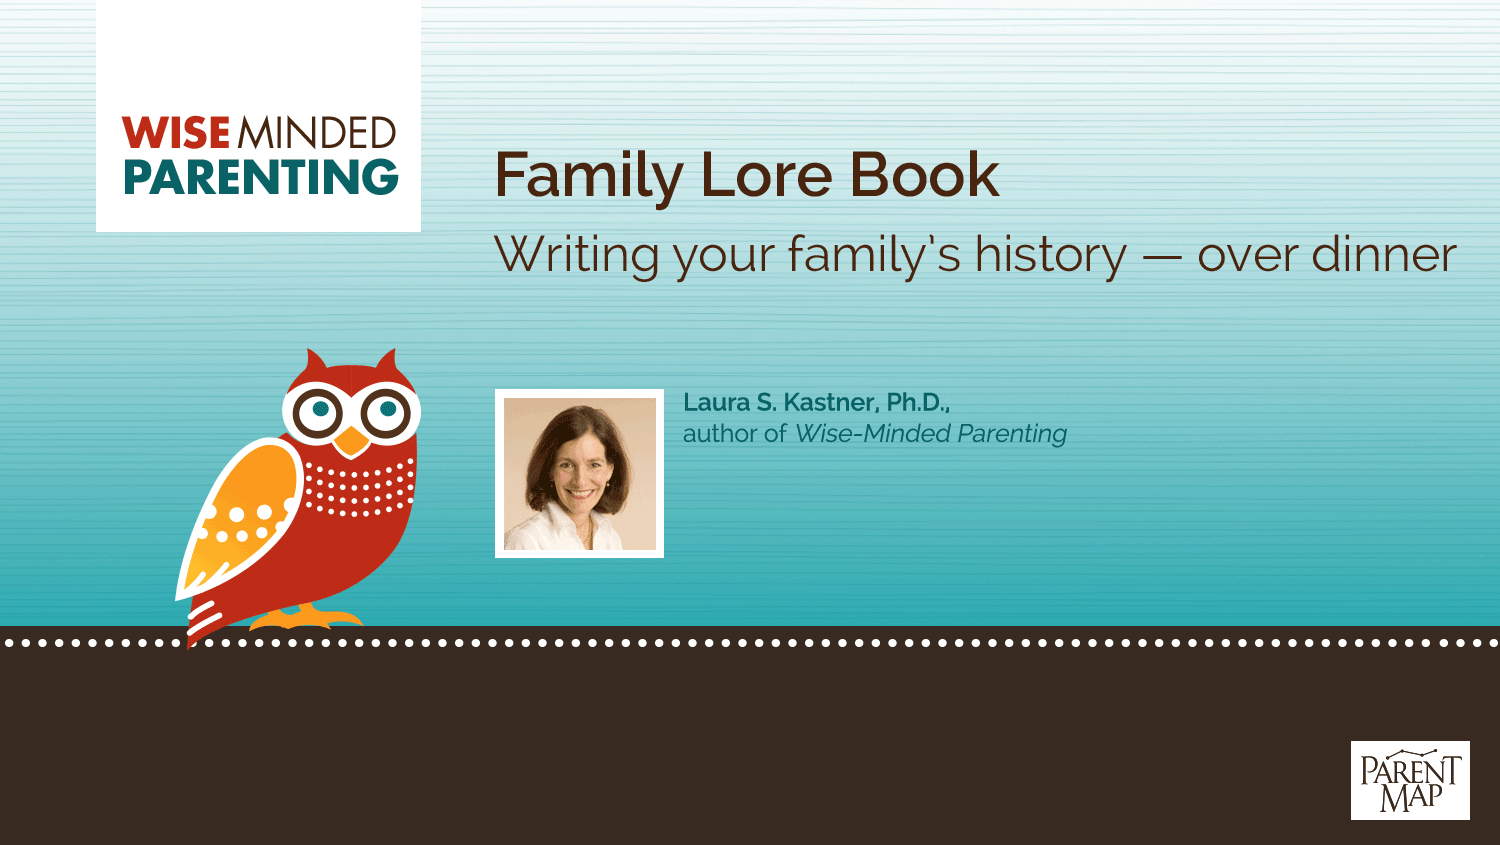 Family Lore Book: Writing your family's history — over dinner